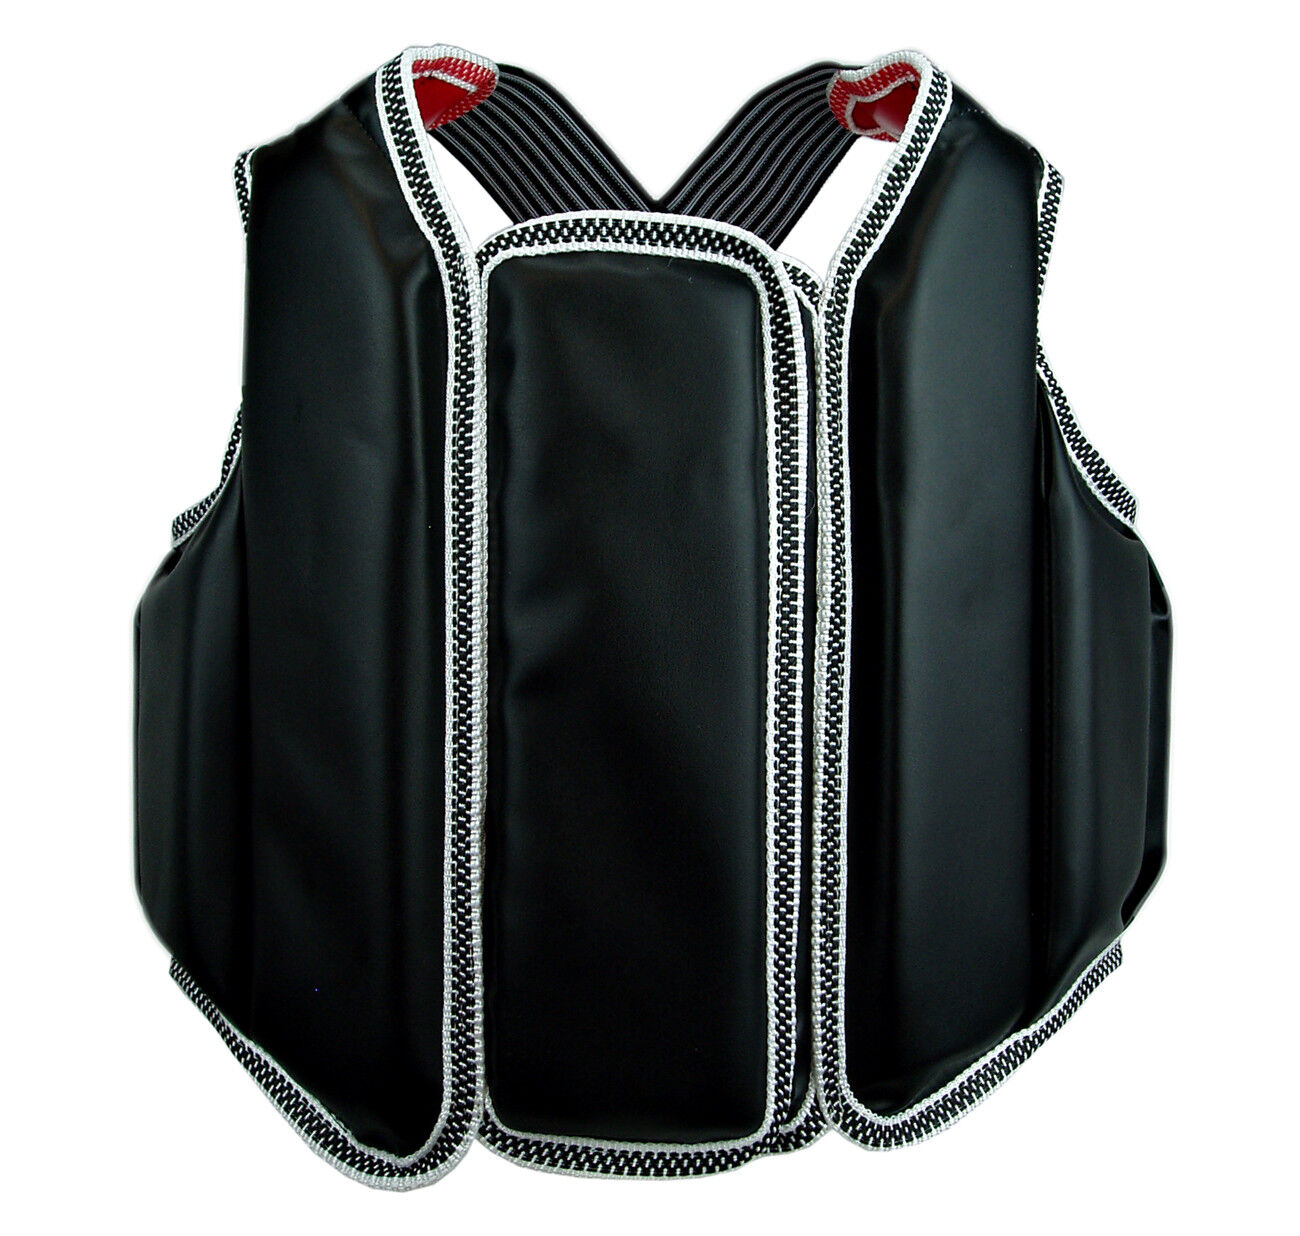 Martial Arts Chest Guard Vest with Hook and Loop Closure for Taekwondo Karate